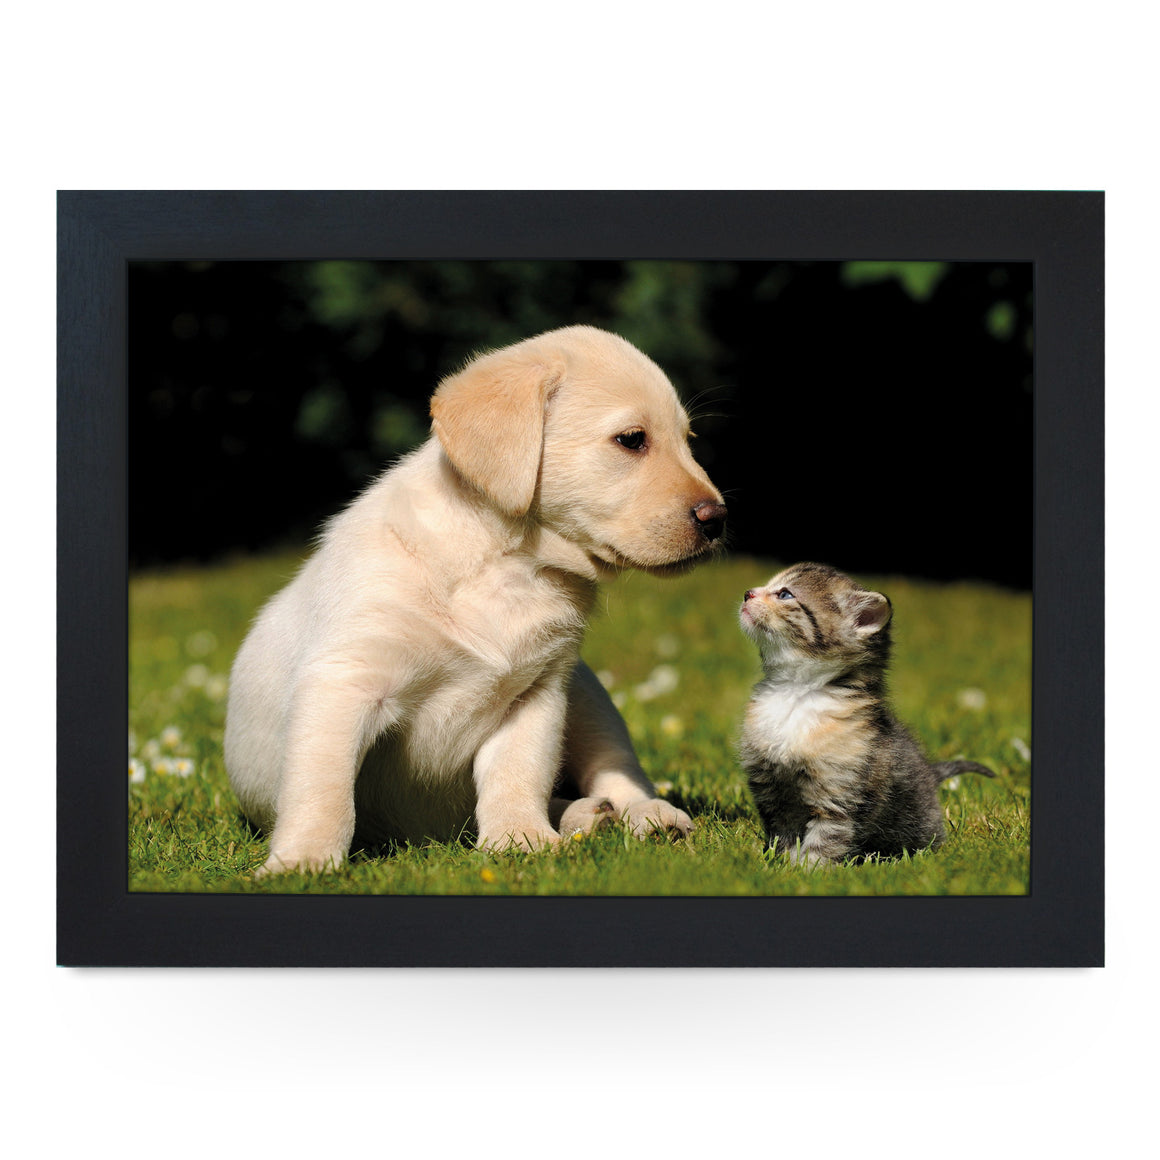 Puppy & Kitten Lap Tray - L0219